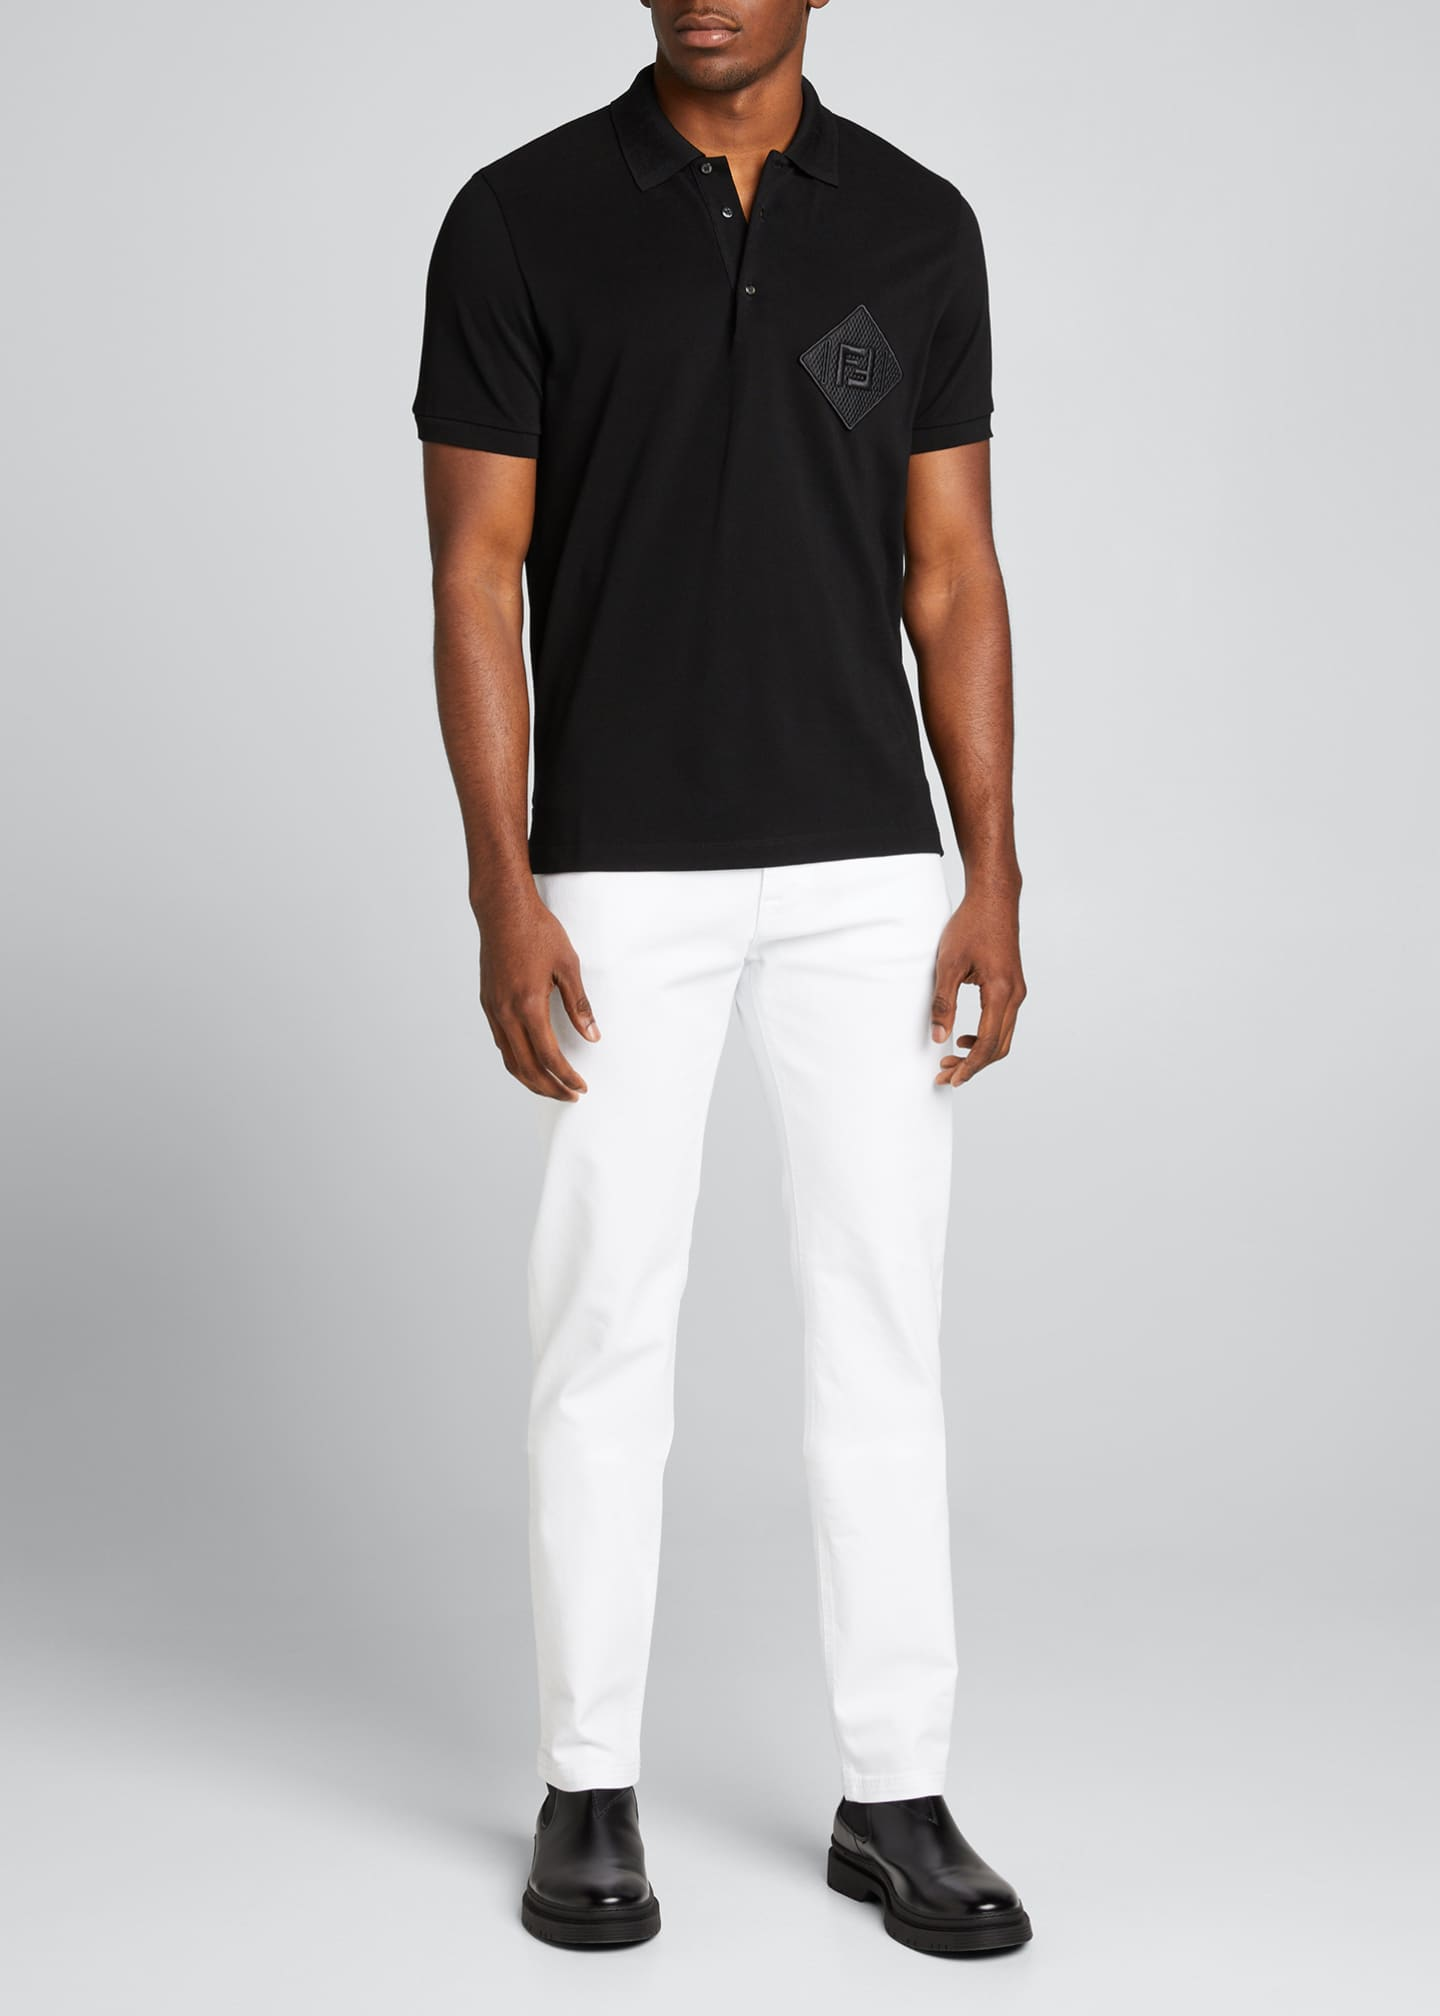 Image 1 of 5: Men's Pique Polo Shirt w/ Mesh FF Patch